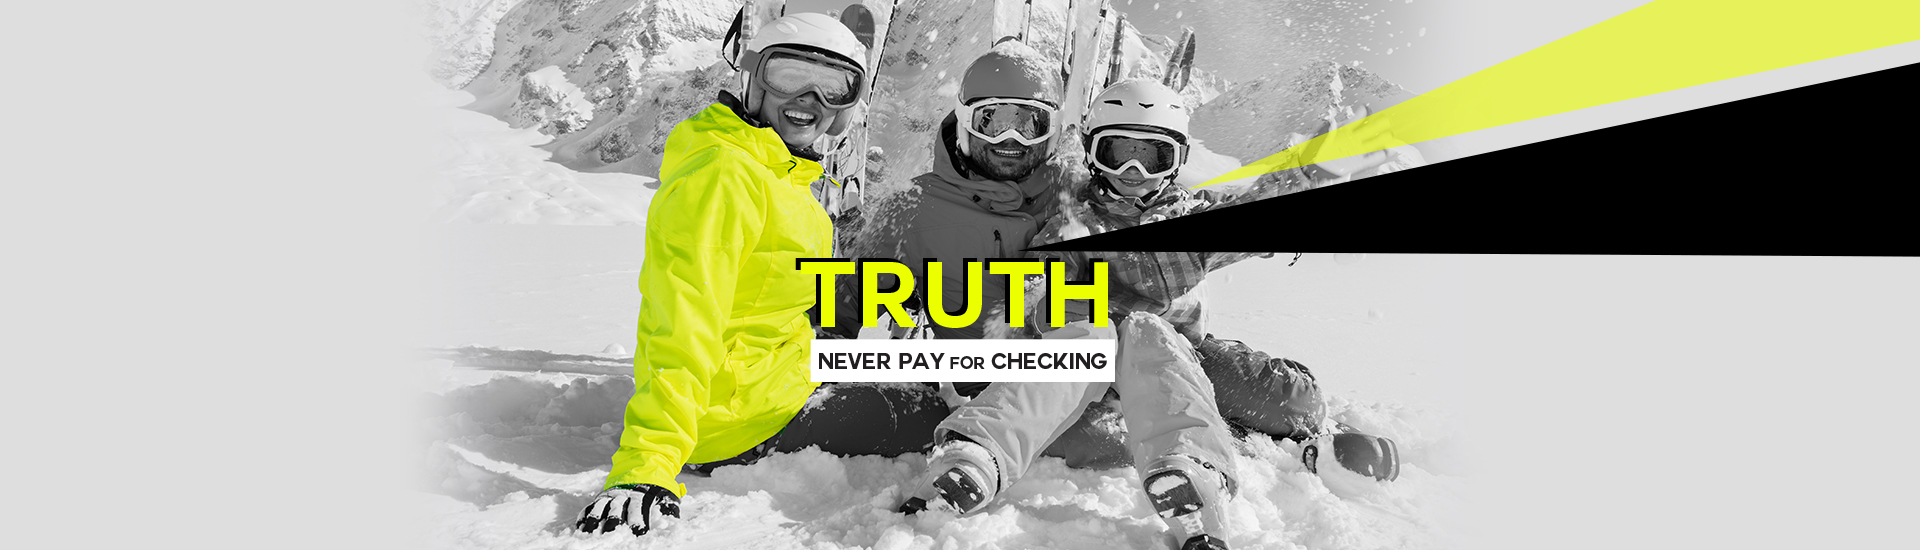 truth-vbt-never-pay-for-checking-ski